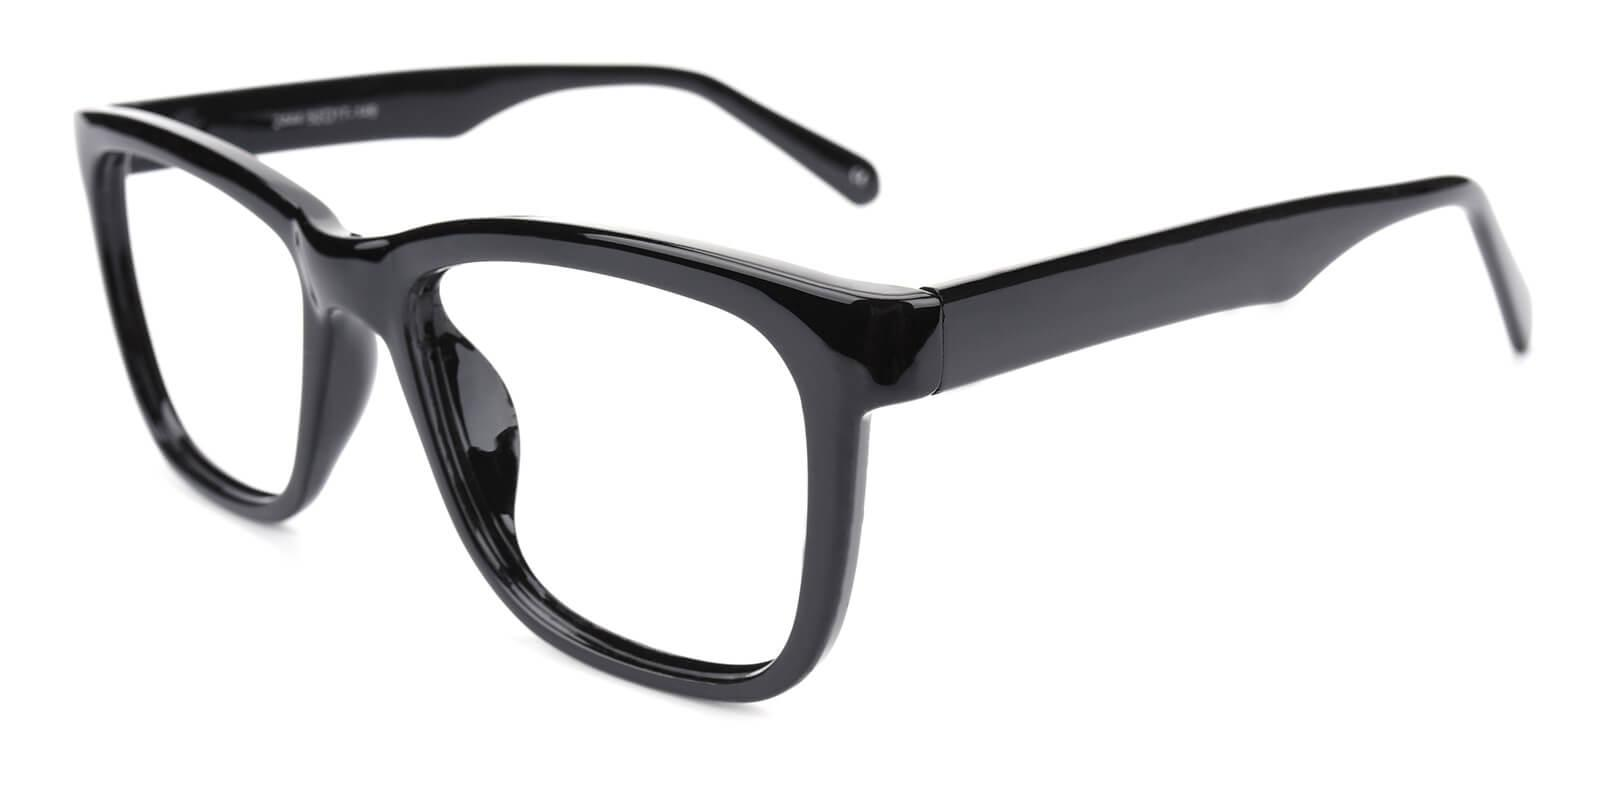 Colaan-Black-Square-Plastic-Eyeglasses-additional1